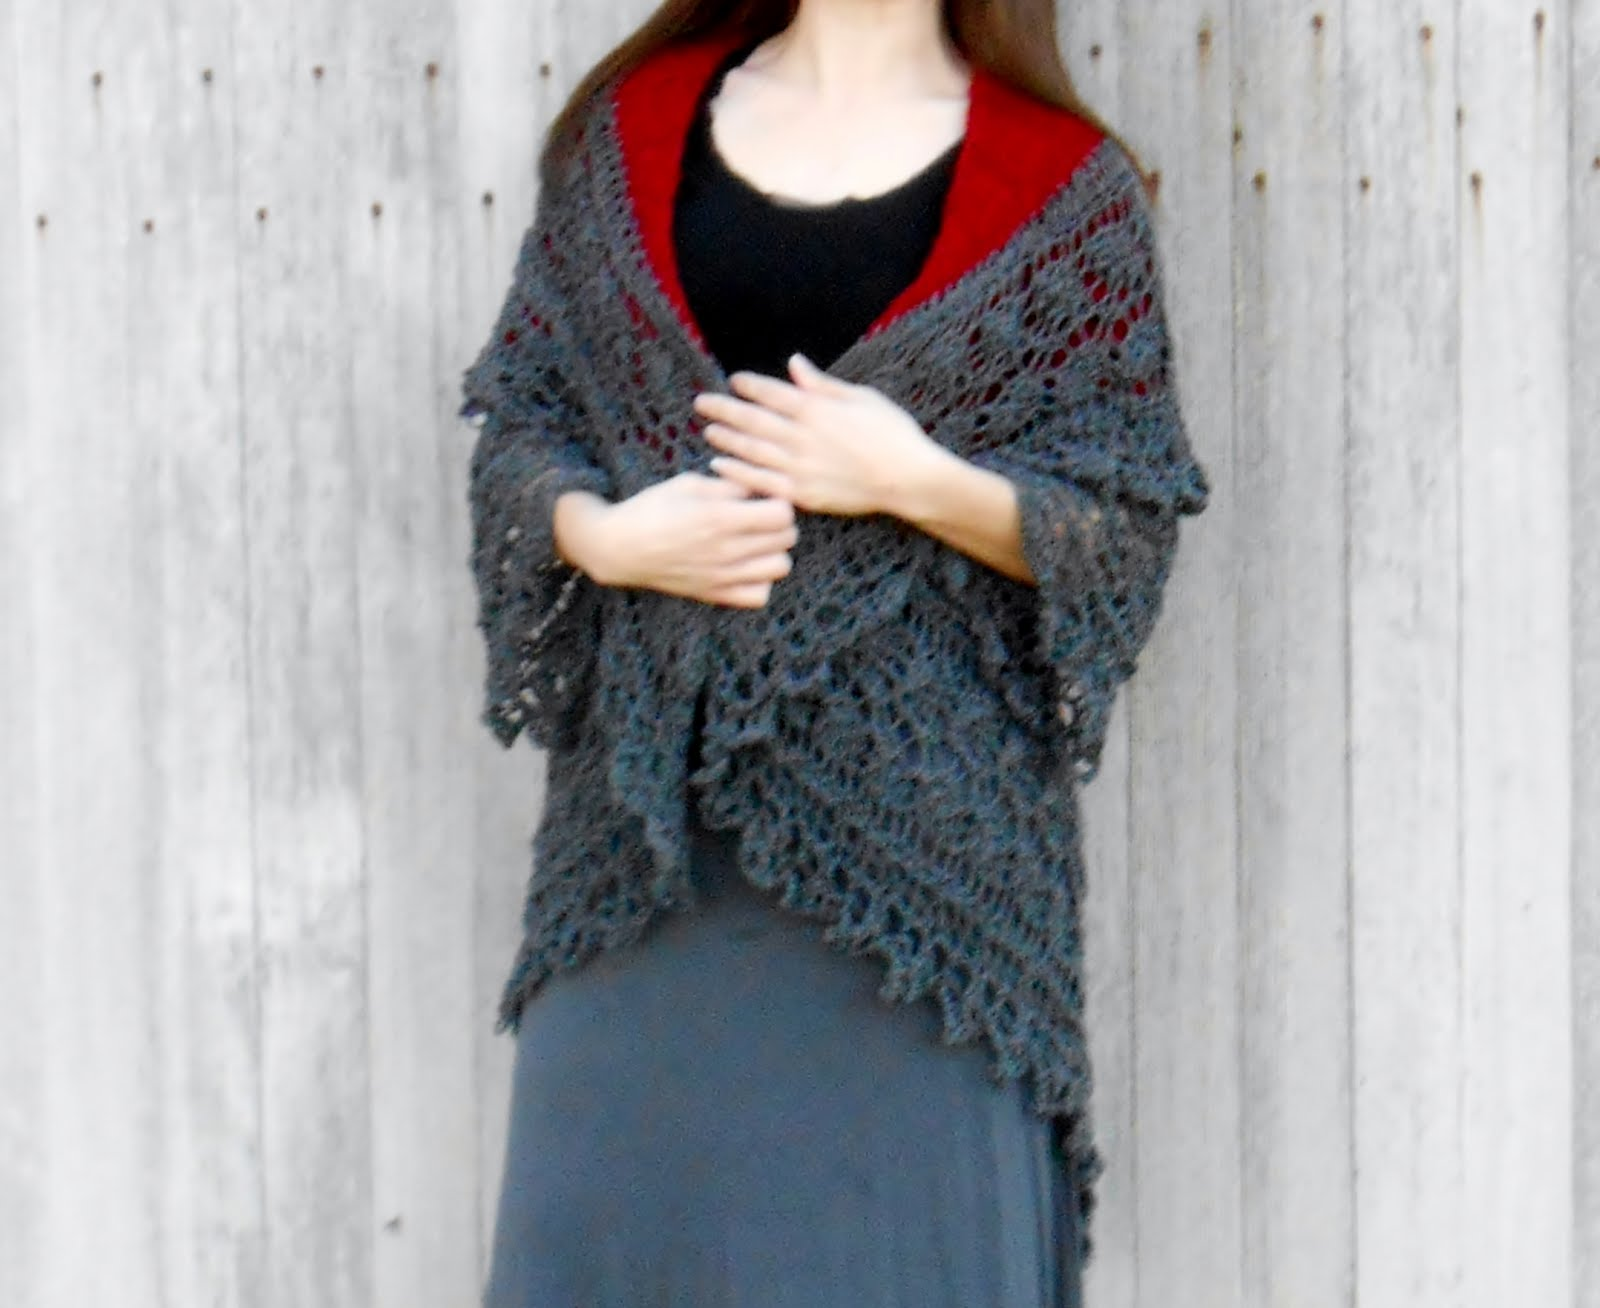 De-Vinely Bohemian Lace Shrug